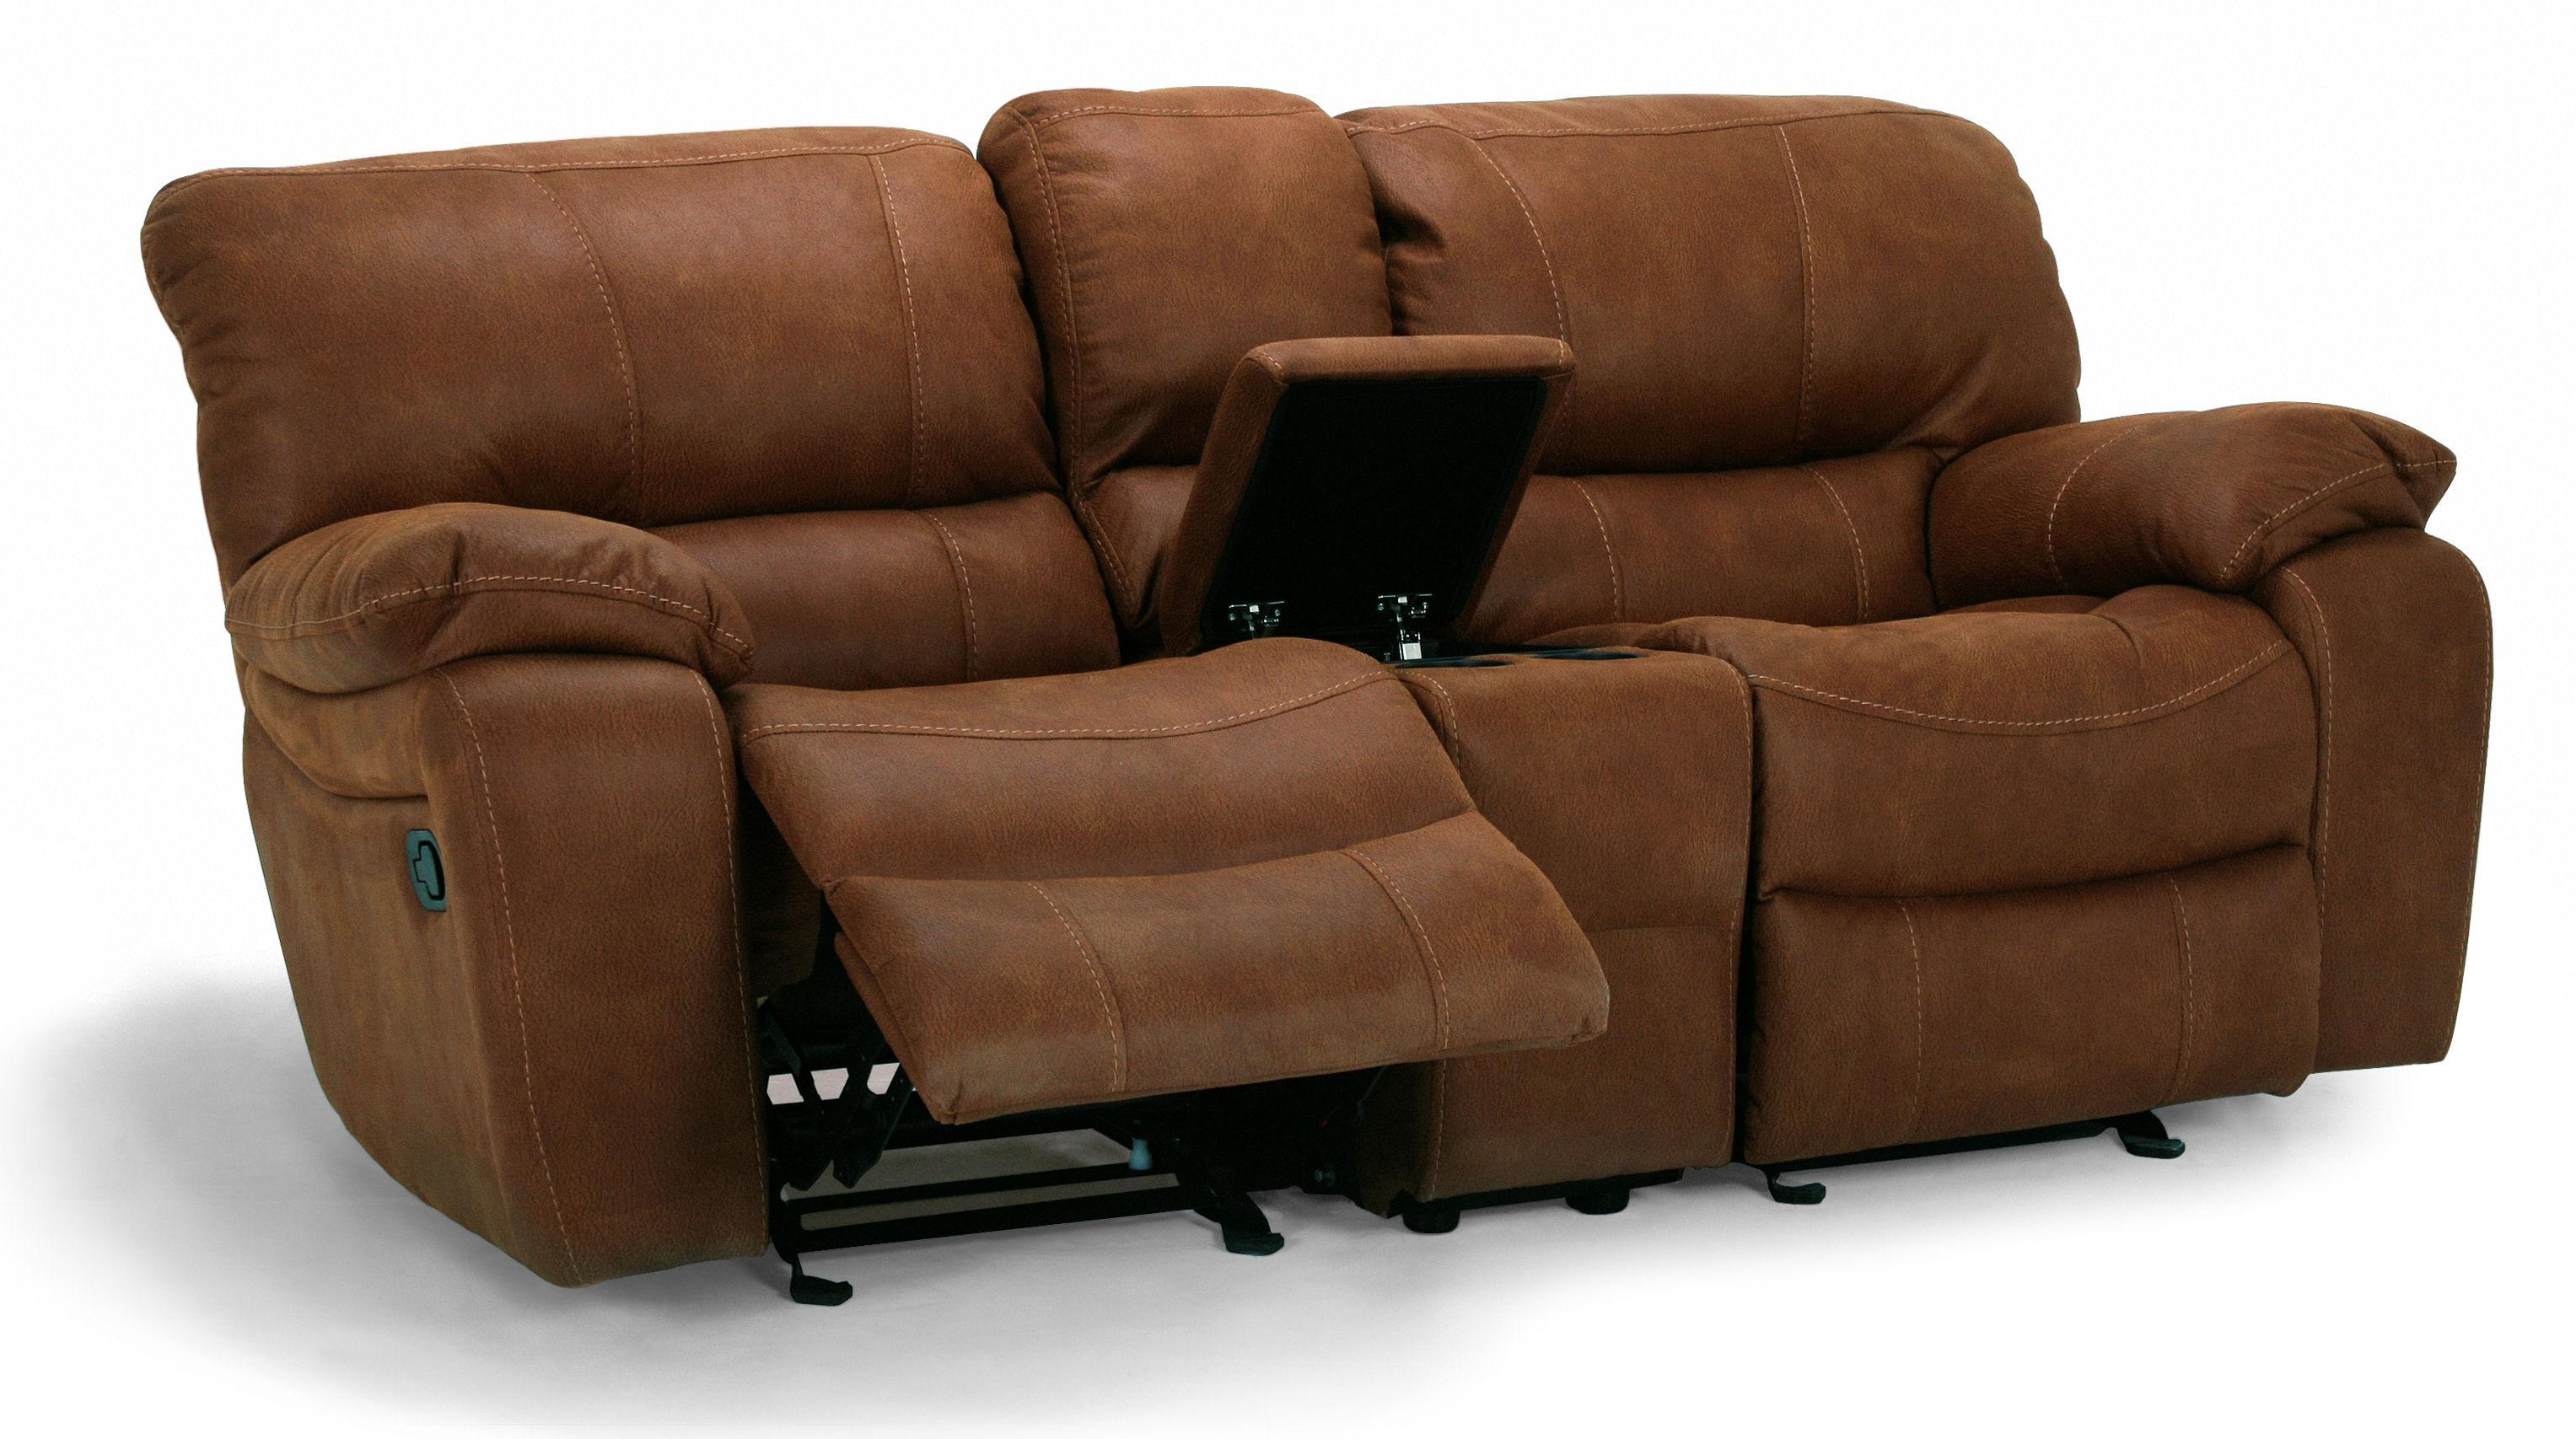 Flexsteel Latitudes - Grandview Double Power Reclining Loveseat - Item Number: 1541-604P